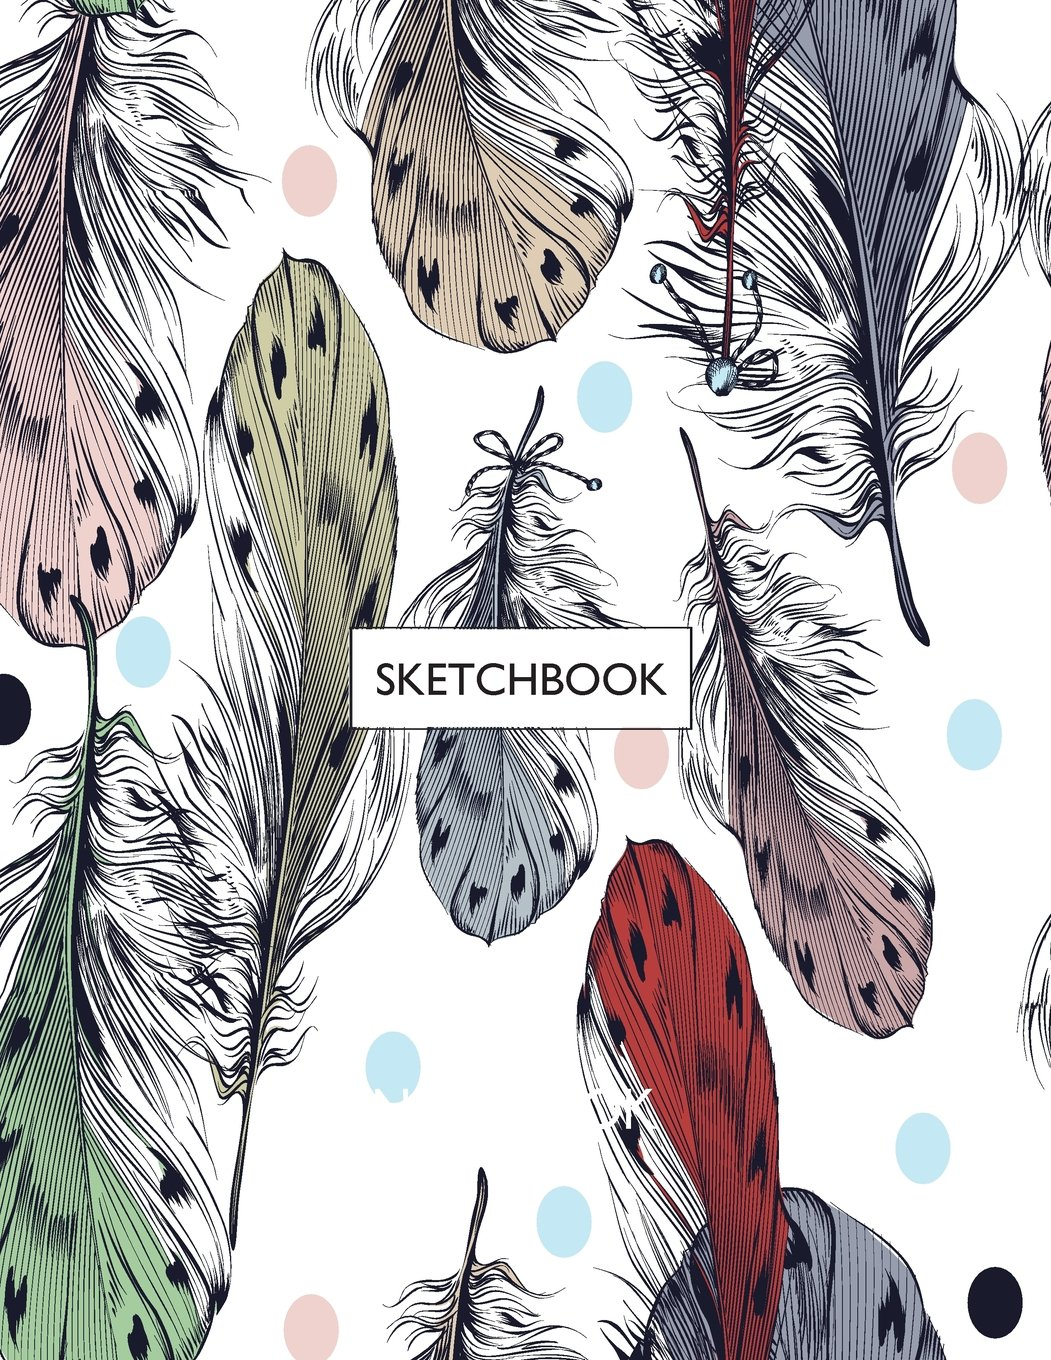 Sketchbook peacock feathers cover 8 5 x 11 inches 110 pages blank unlined paper for sketching drawing whiting journaling doodling peacock